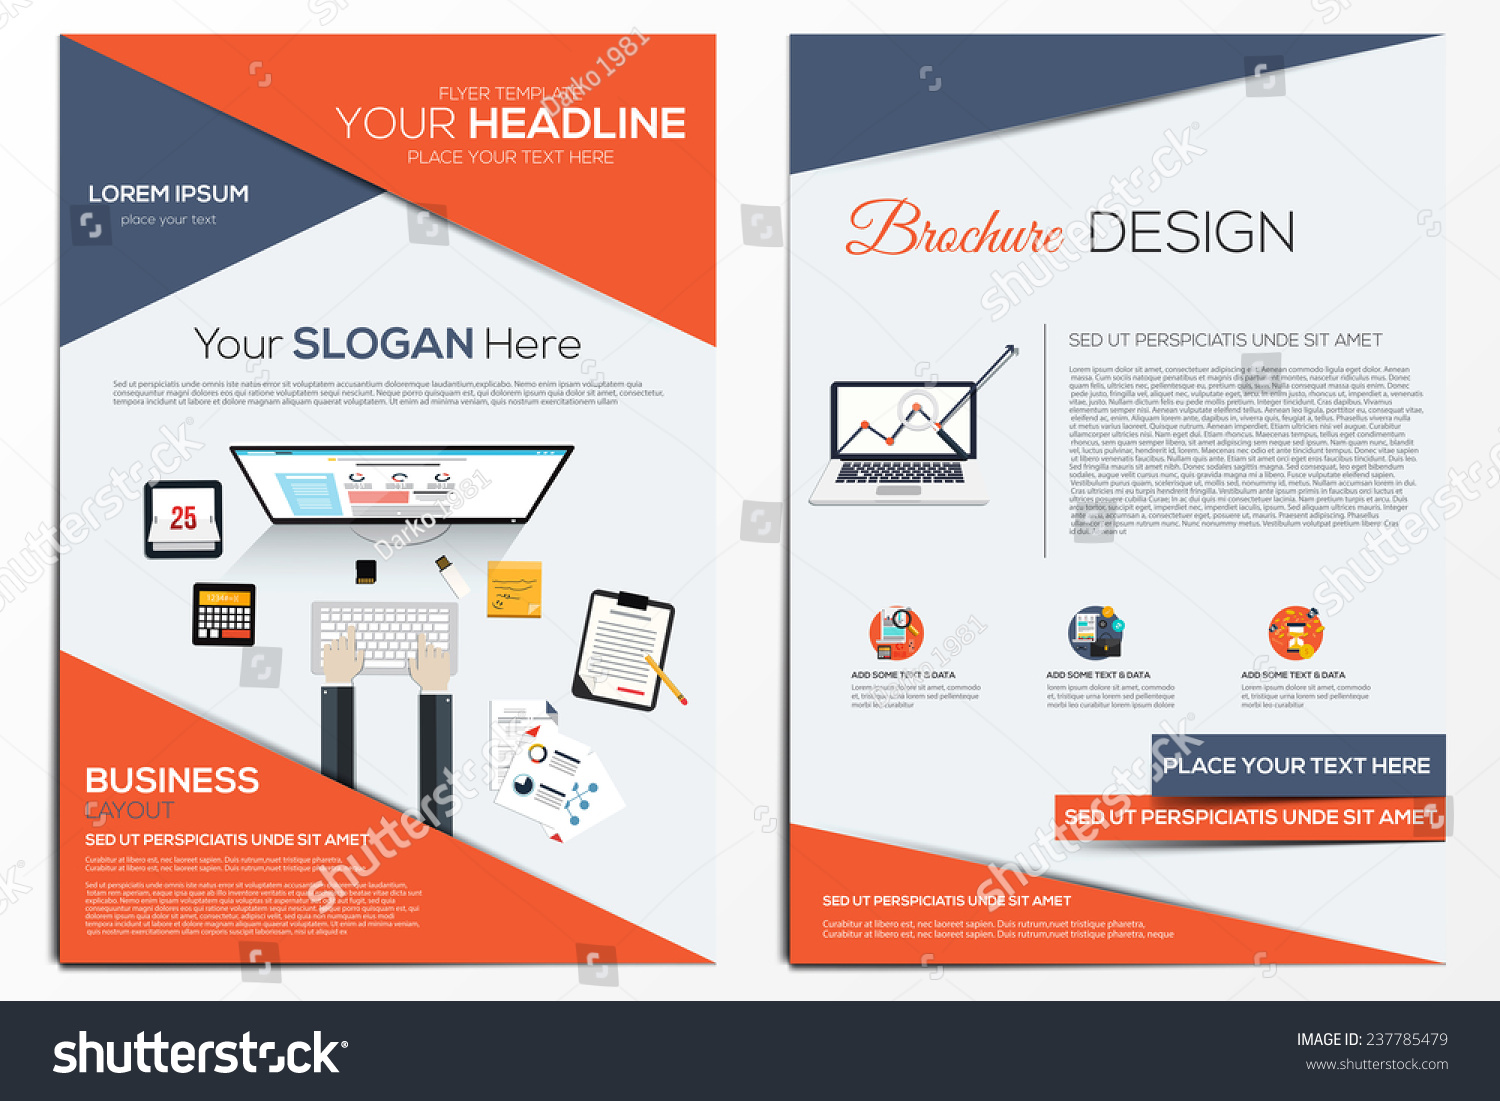 Brochure design template abstract modern backgrounds stock for Web design brochure template